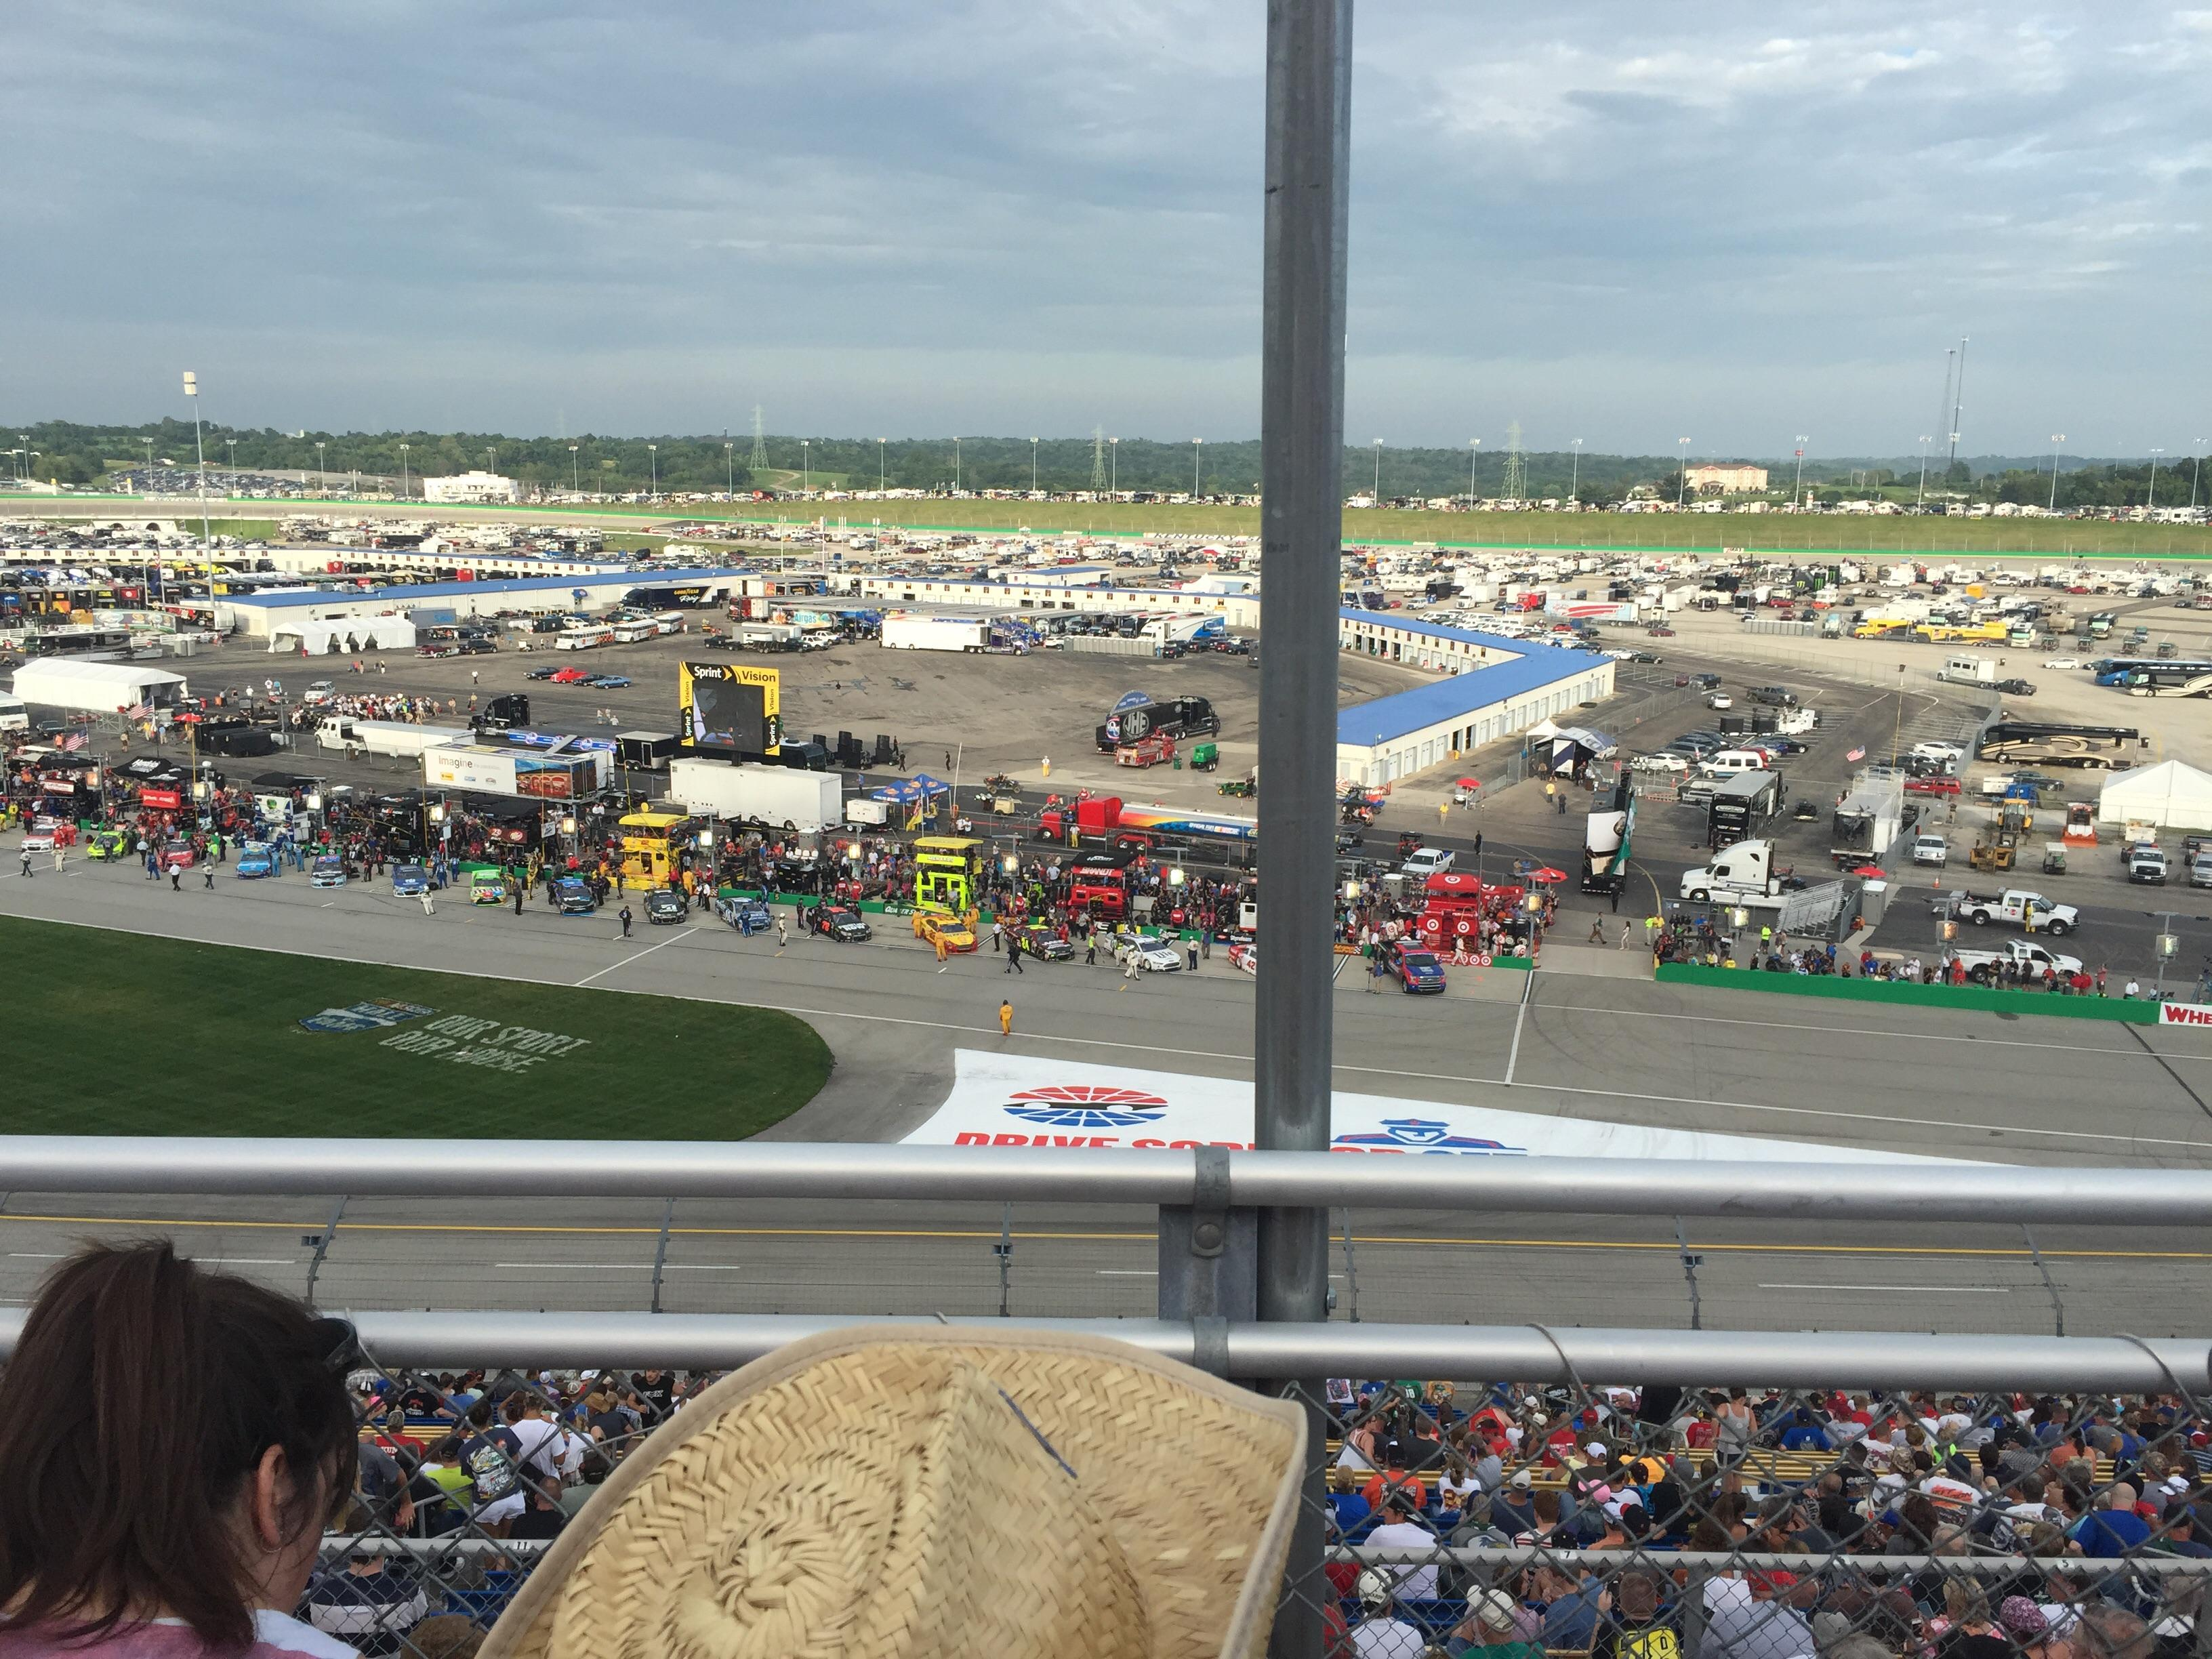 Kentucky Speedway Section KYTI Row 2 Seat 25